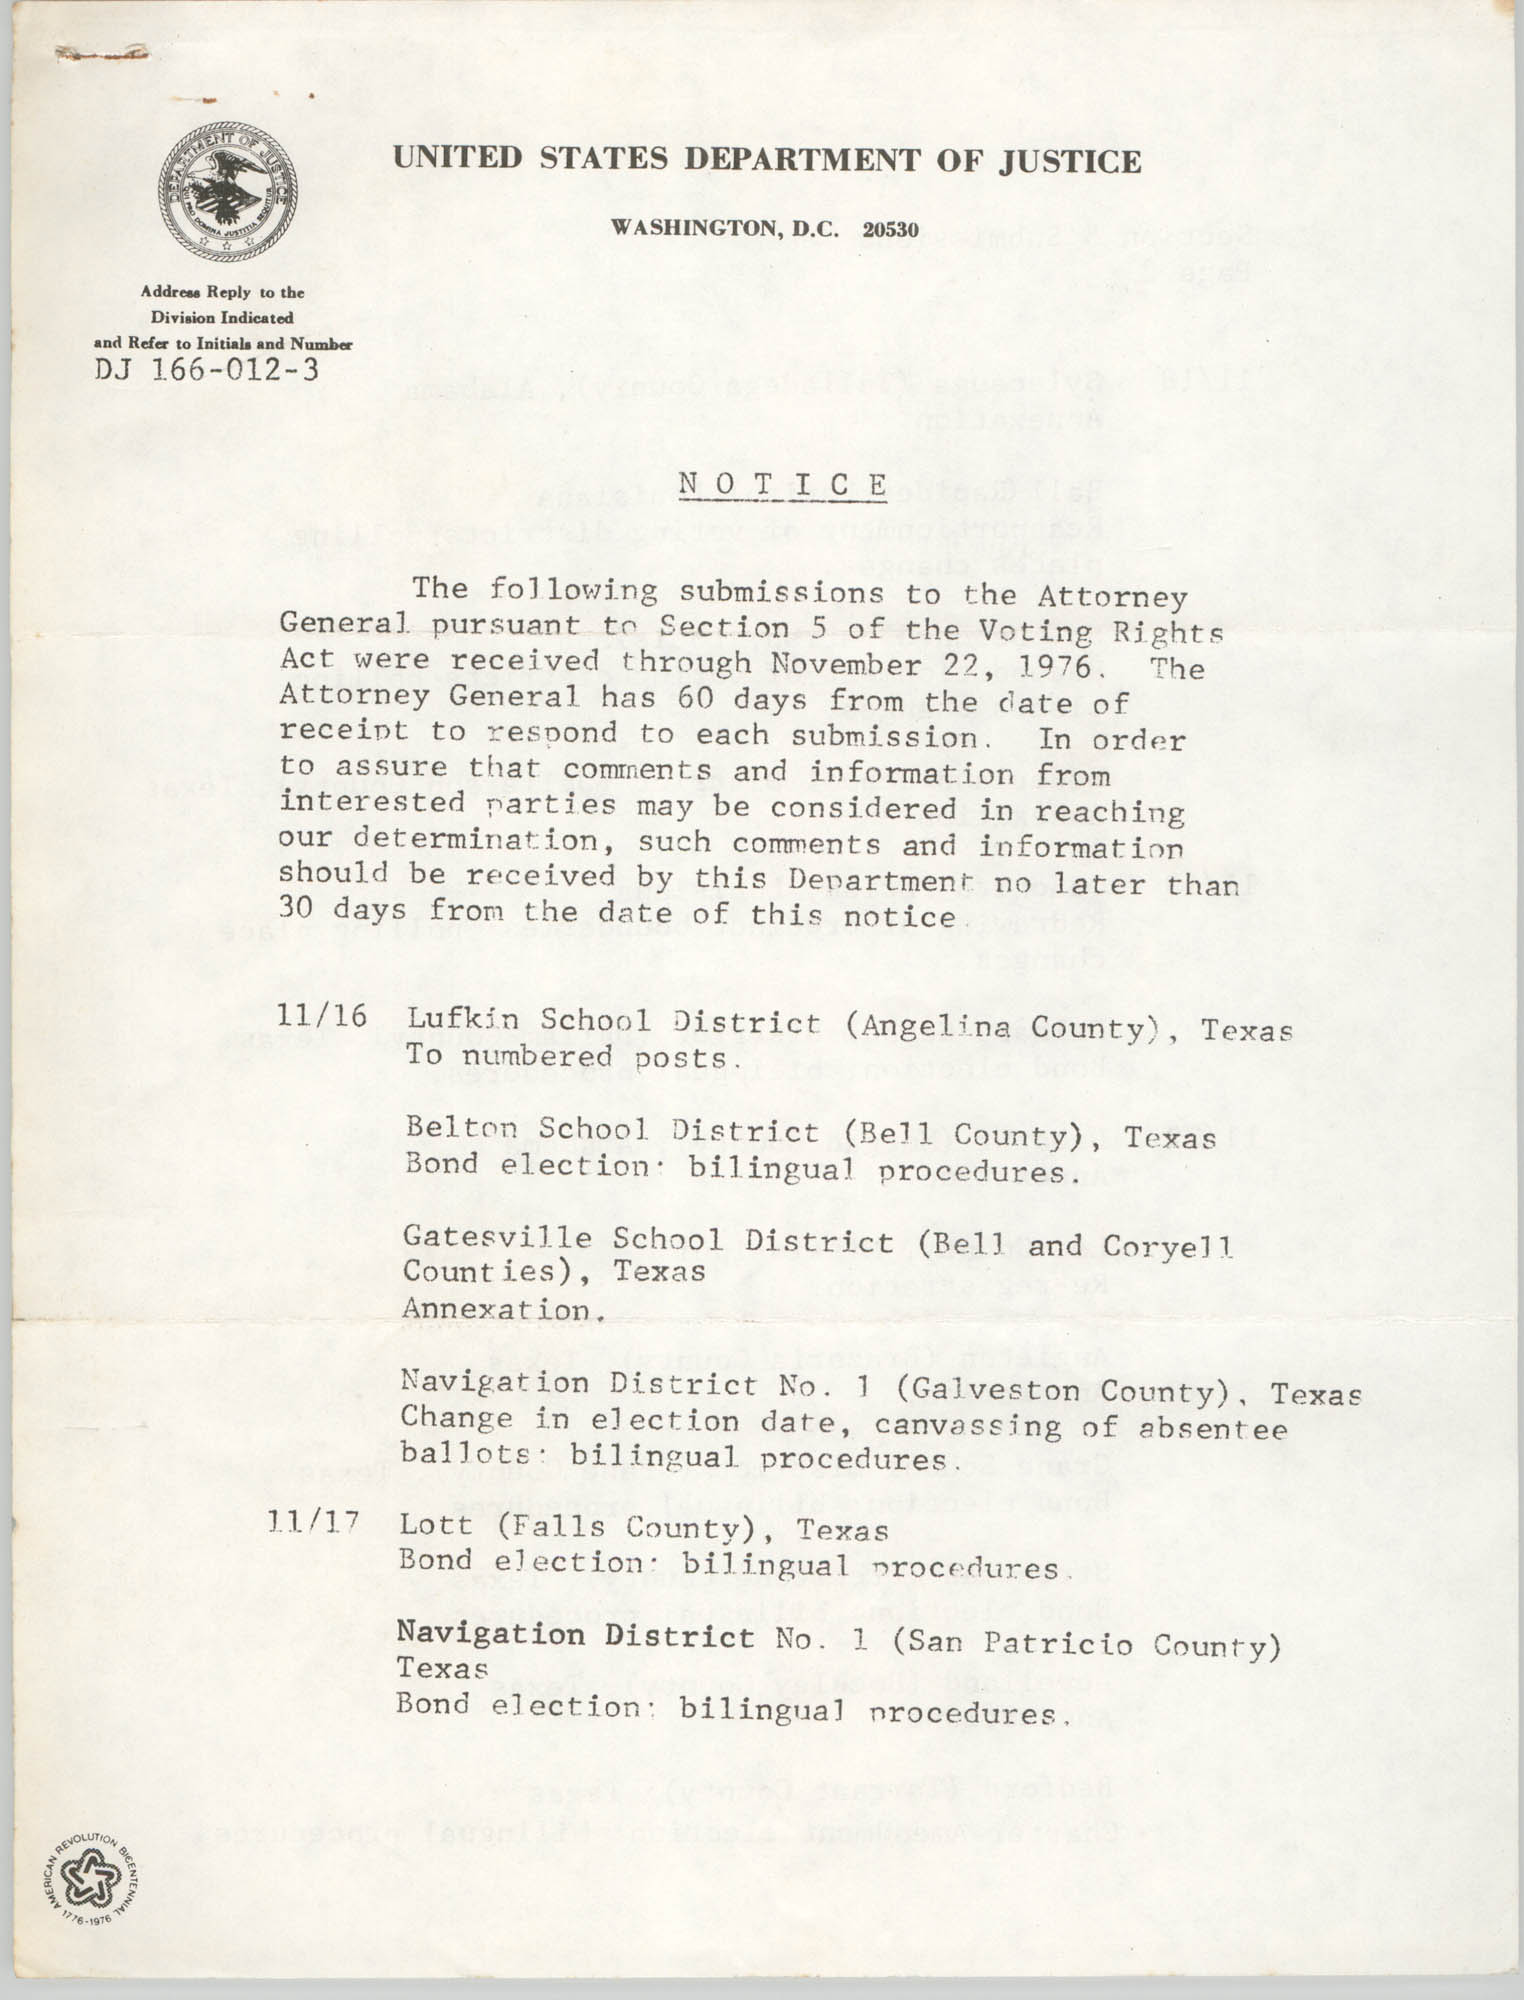 United States Department of Justice Notice, November 1975